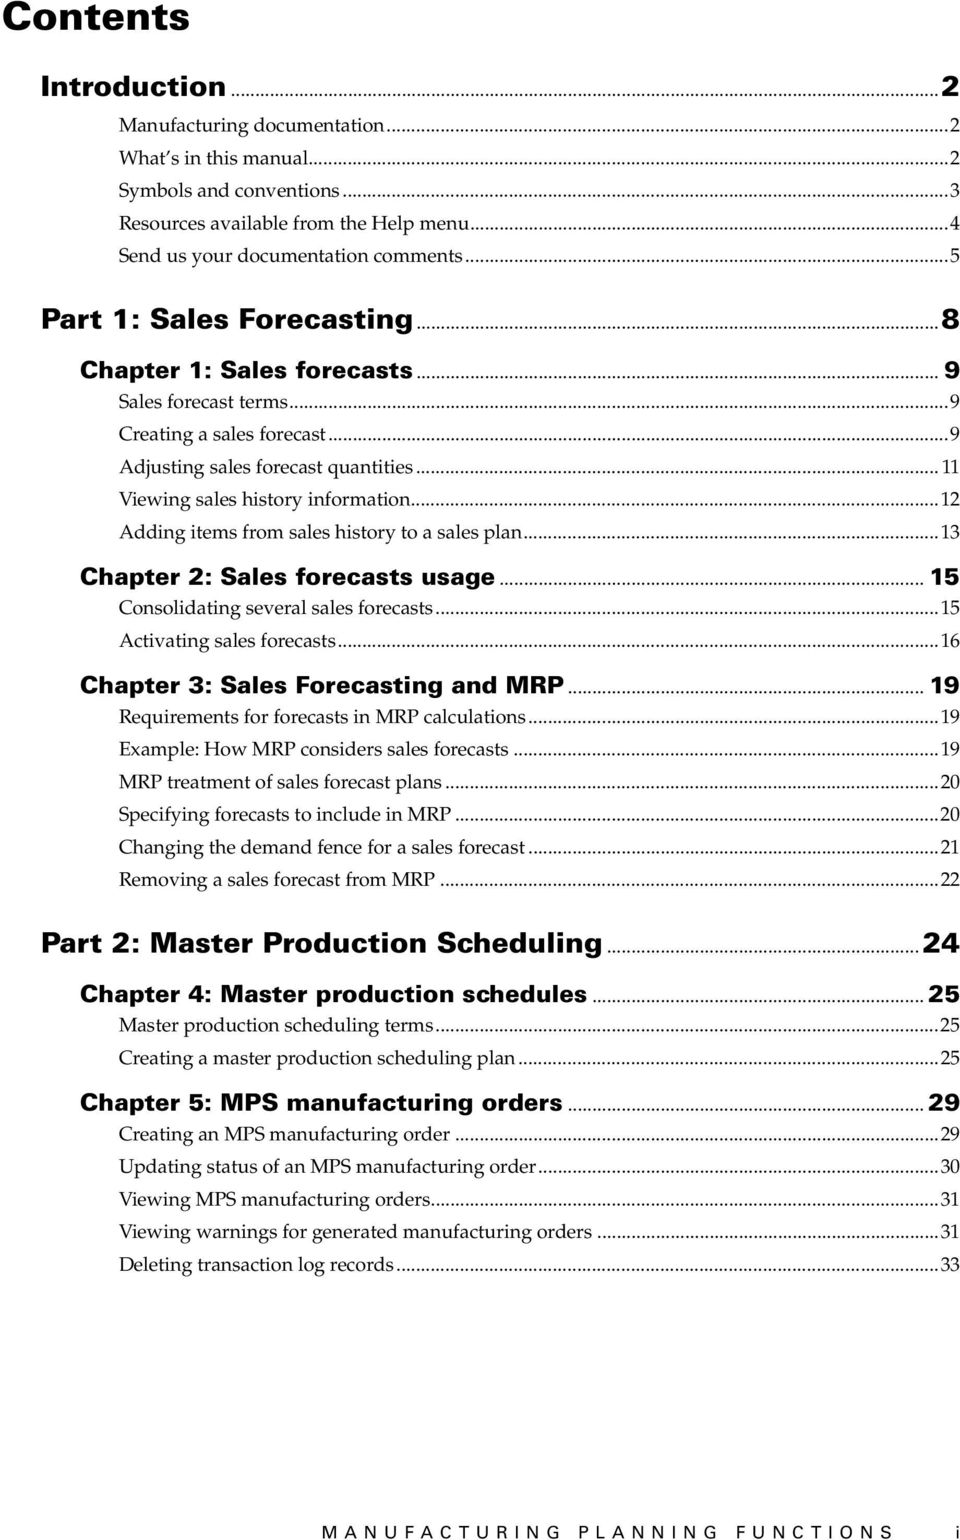 ..12 Adding items from sales history to a sales plan...13 Chapter 2: Sales forecasts usage... 15 Consolidating several sales forecasts...15 Activating sales forecasts.